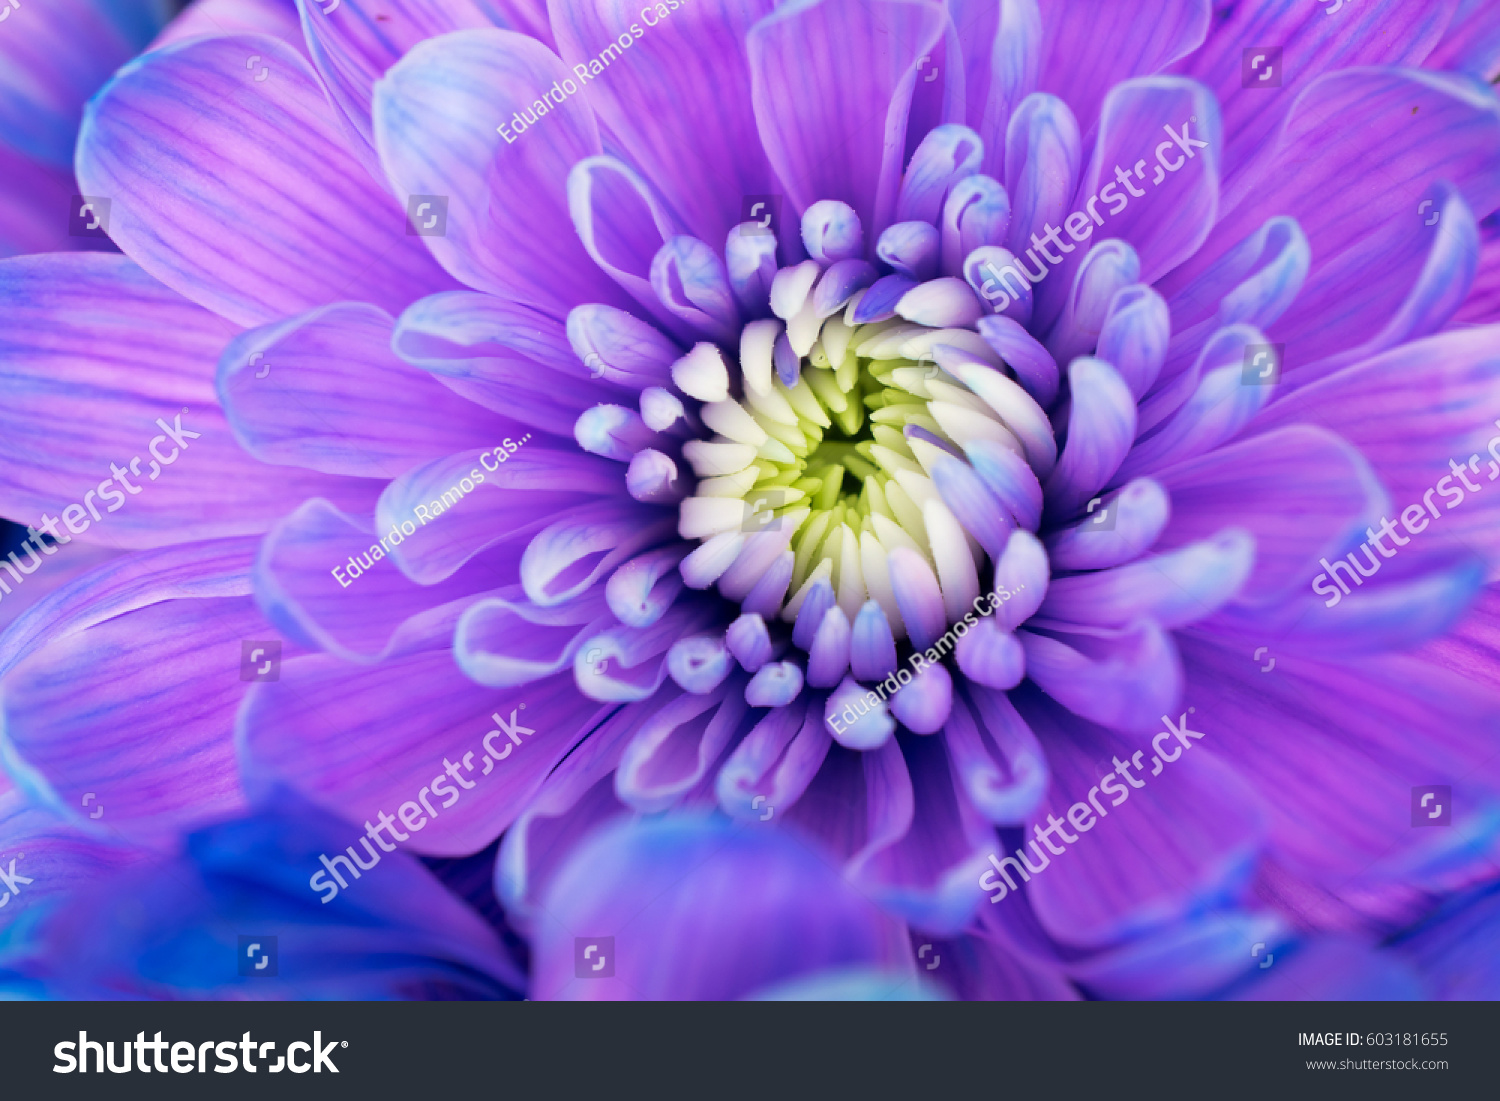 Blue violet flowers stock photo edit now 603181655 shutterstock blue and violet flowers izmirmasajfo